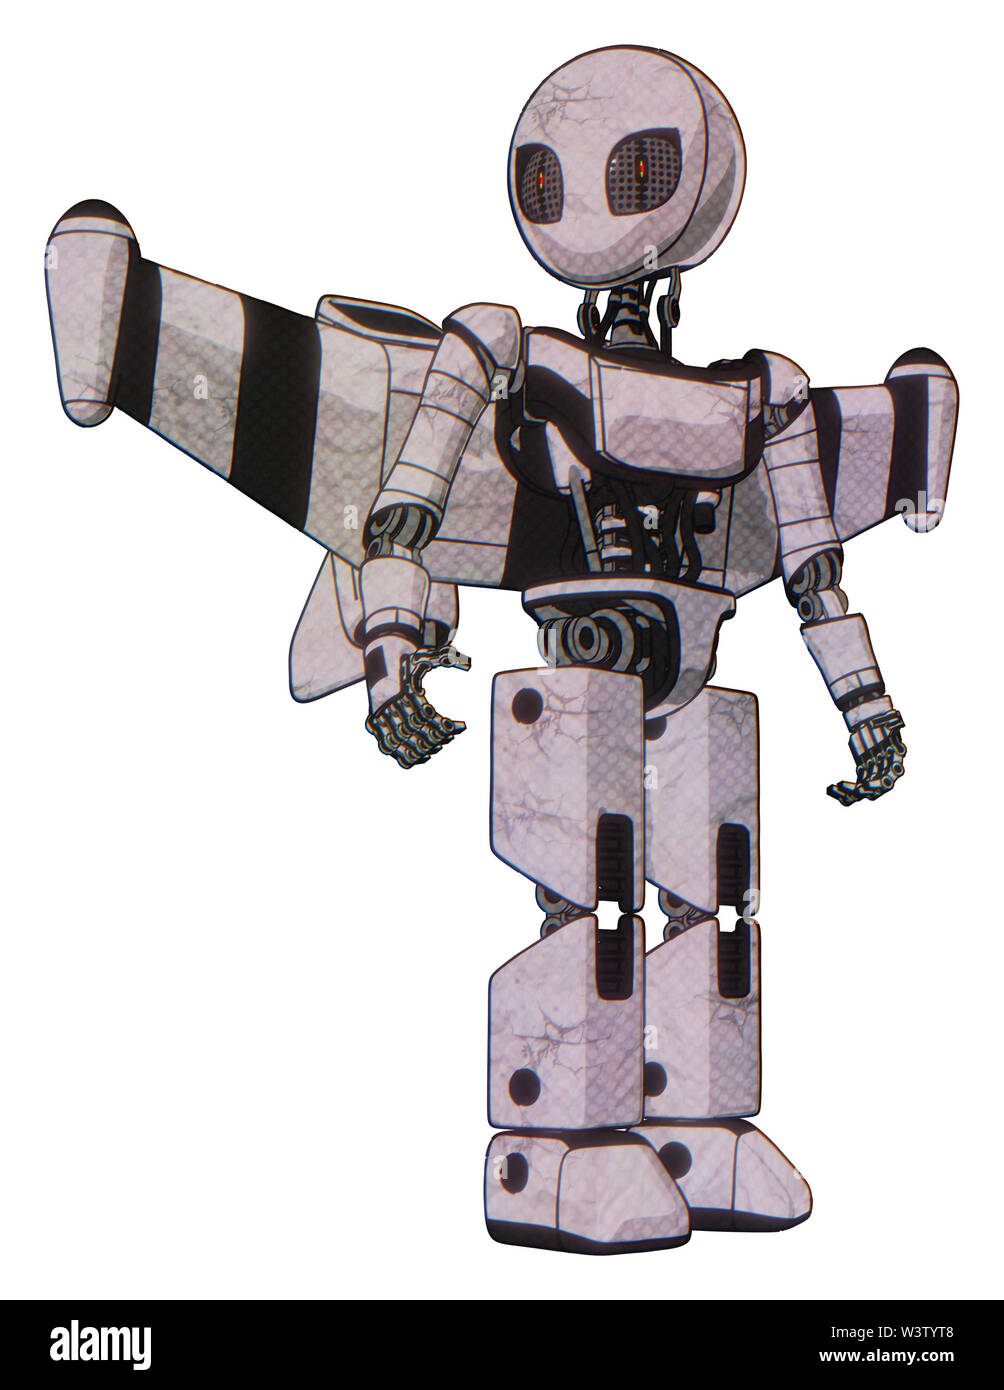 Droid containing elements: grey alien style head, metal grate eyes, light chest exoshielding, ultralight chest exosuit, stellar jet wing rocket pack, - Stock Image